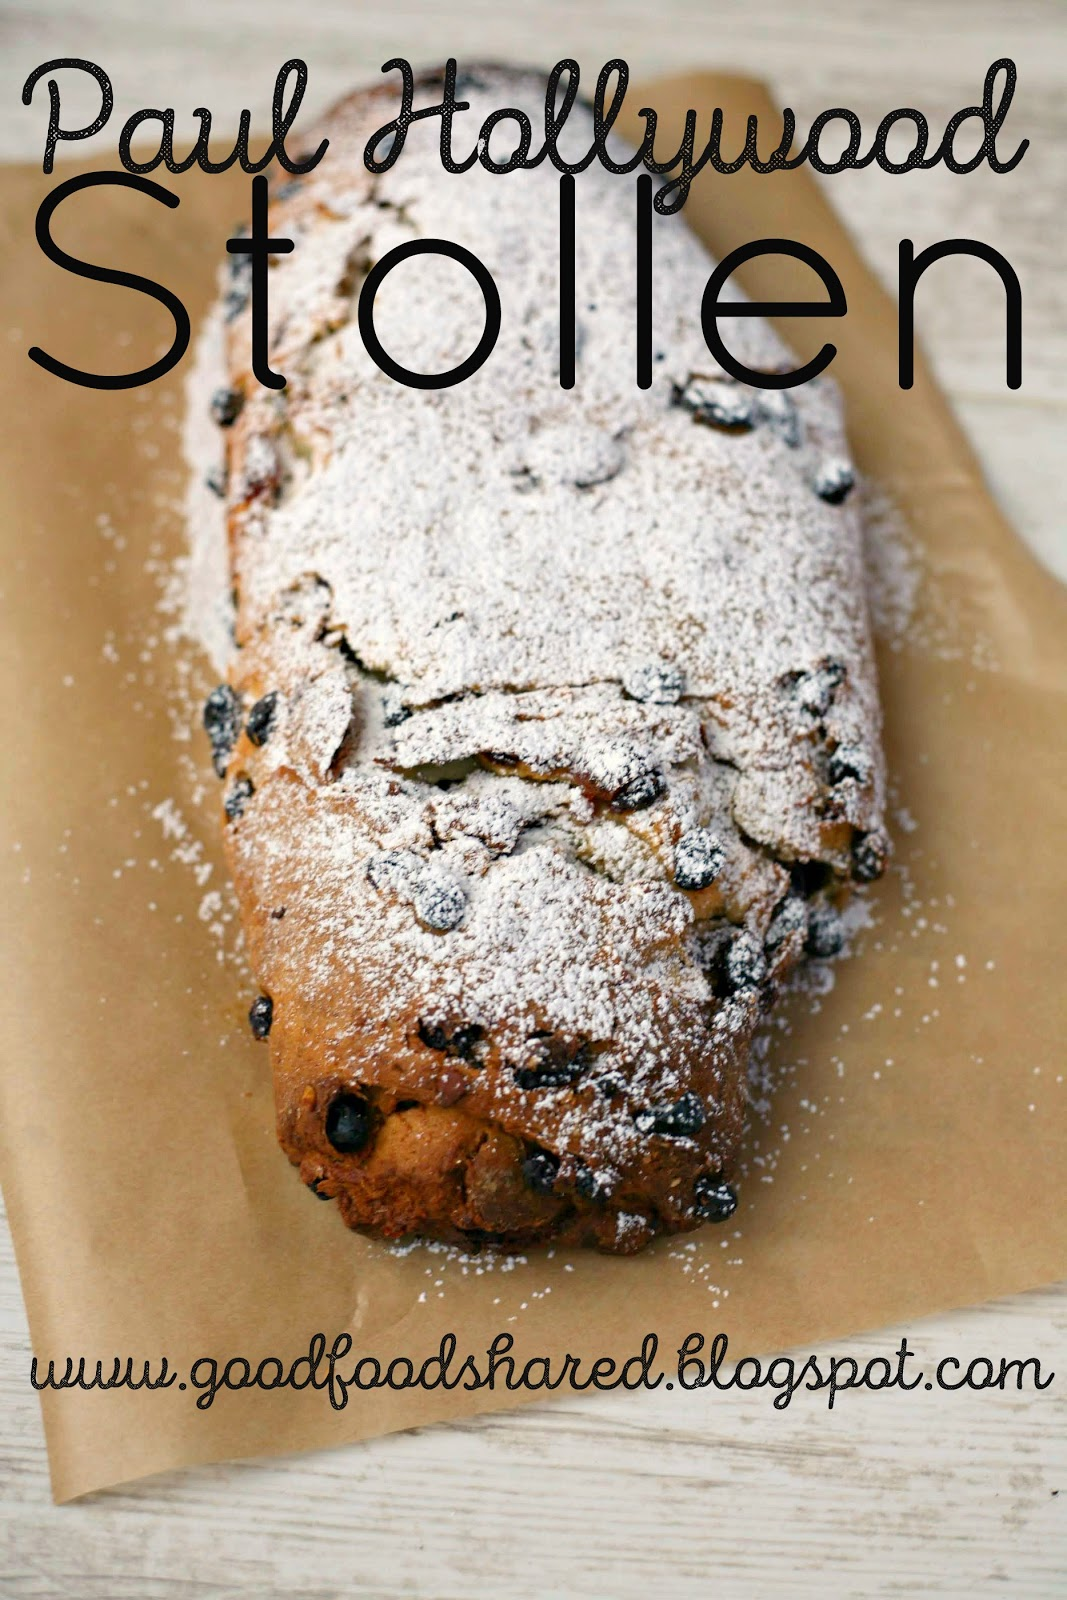 Paul Hollywood Chrismtas Stollen, step by step recipe for that special centrepiece. www.goodfoodshared.blogspot.com